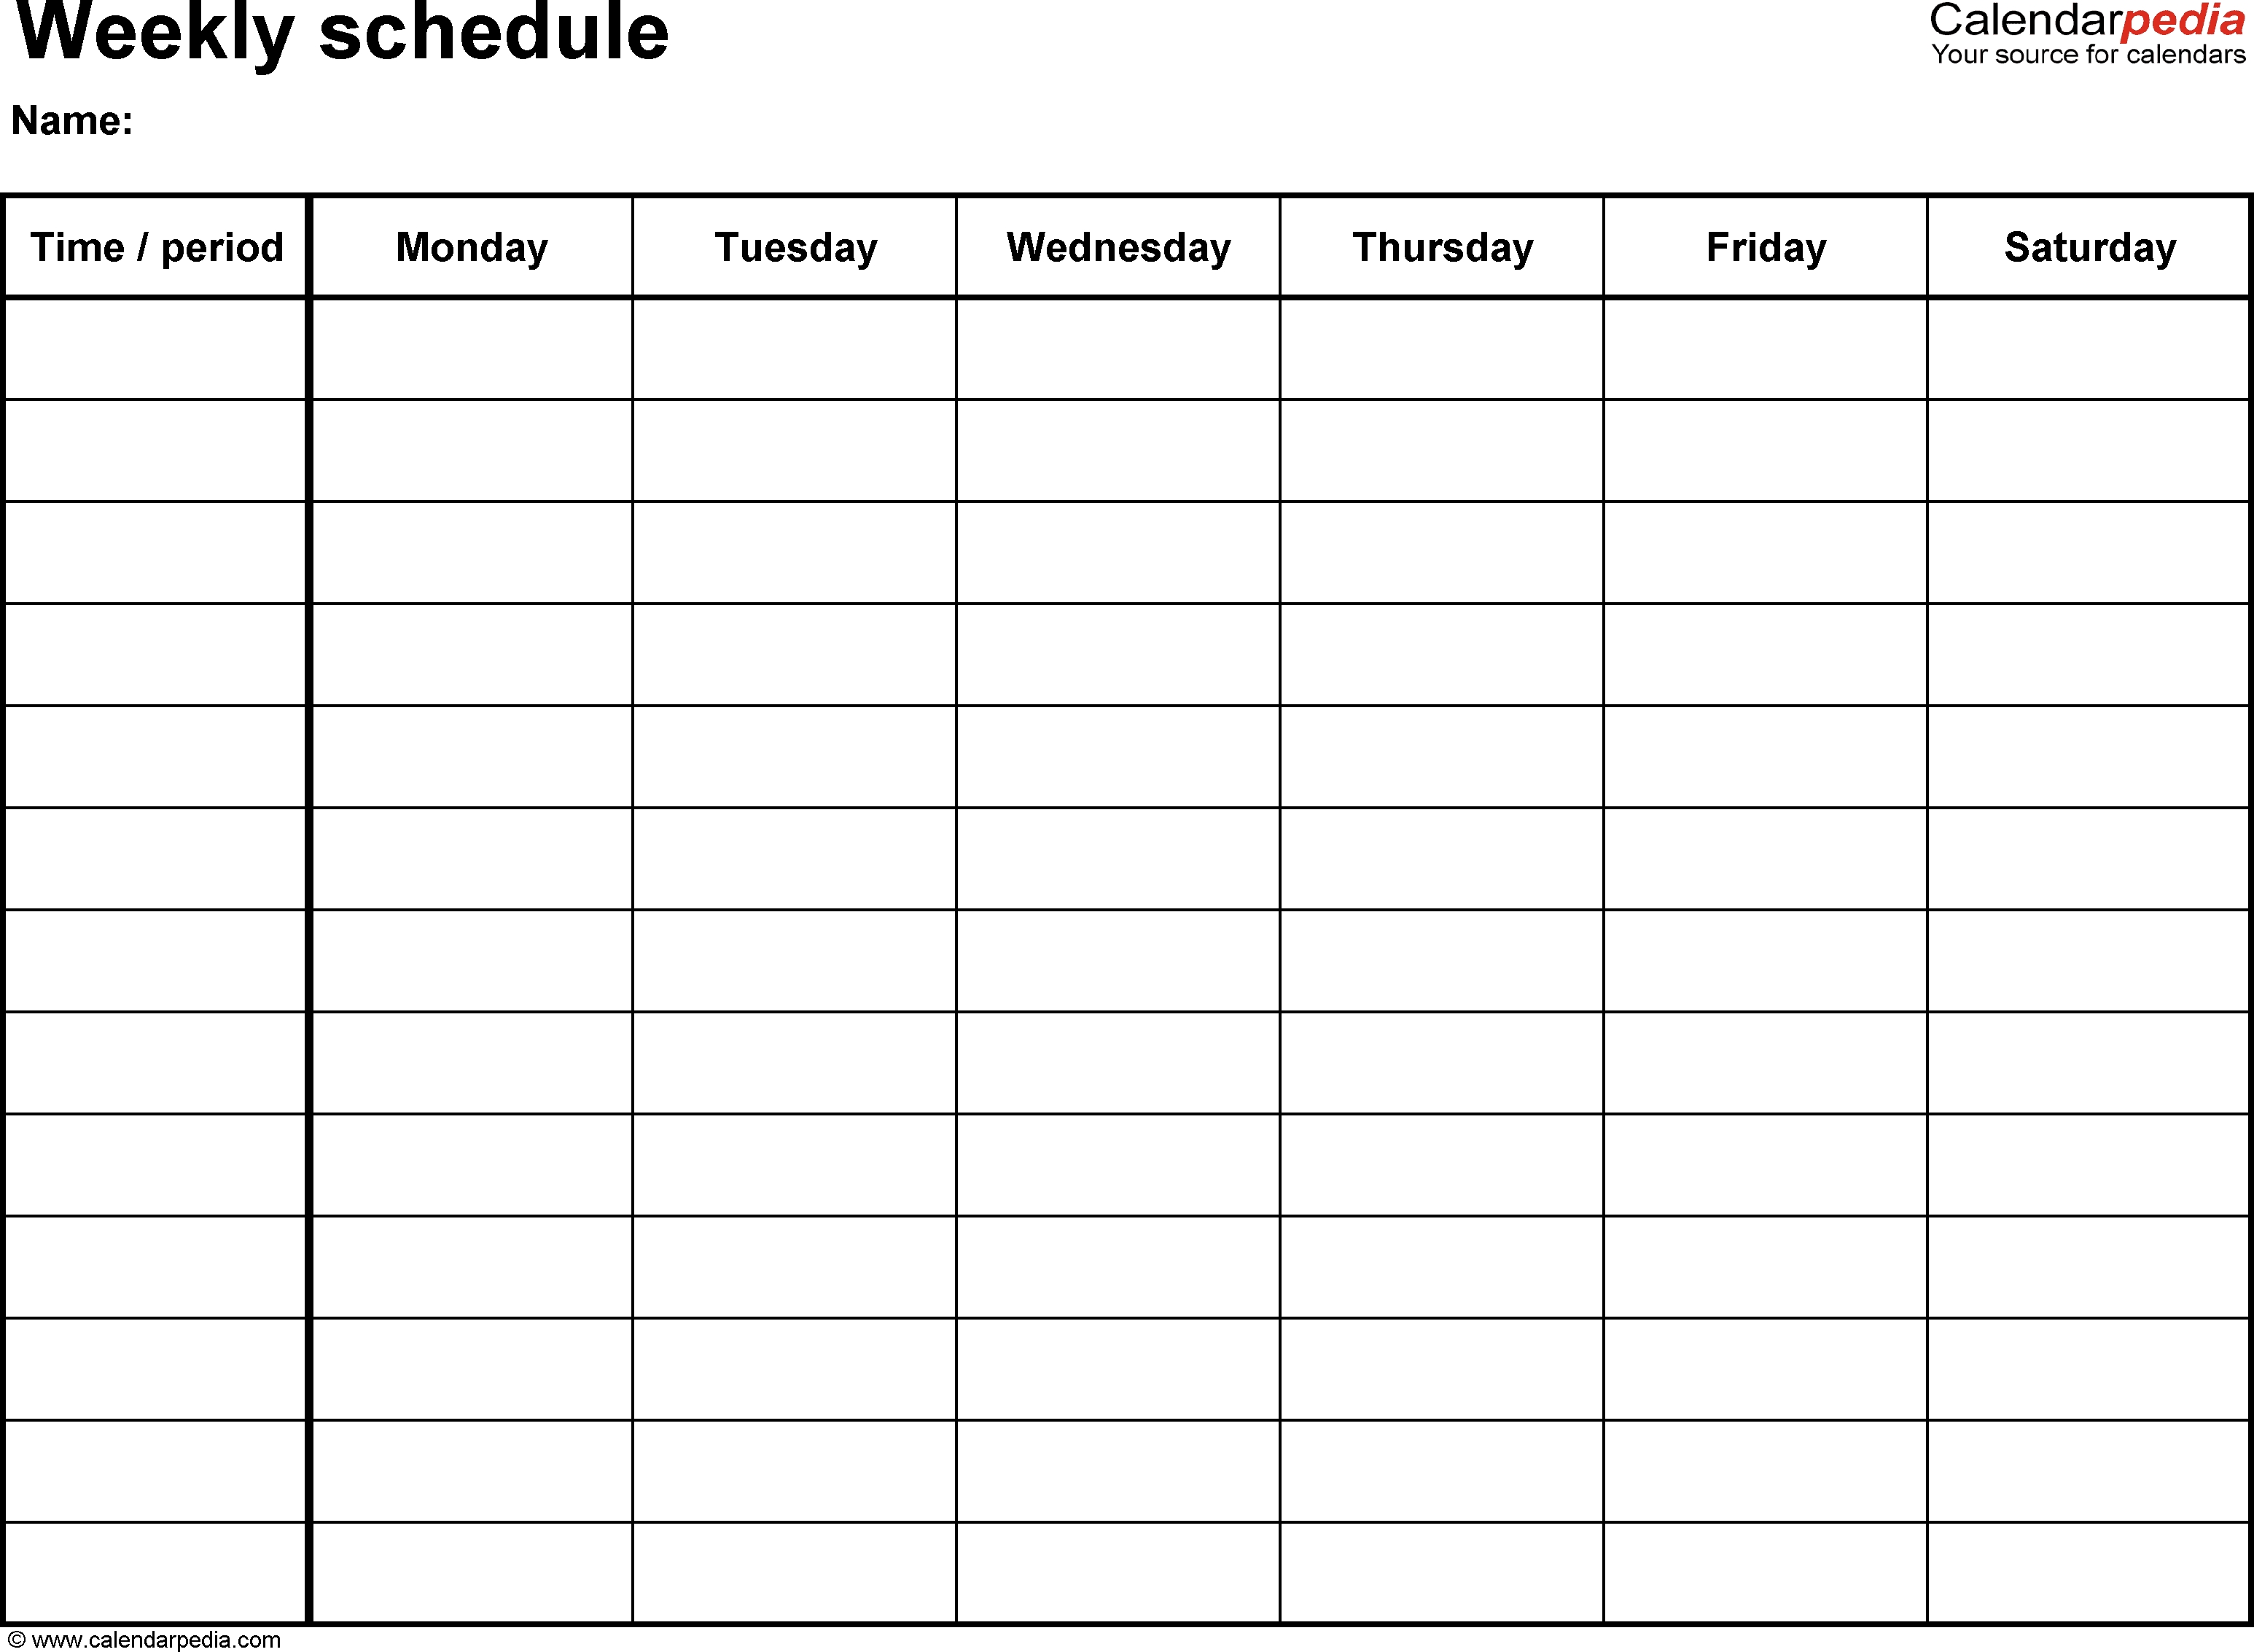 Free Weekly Schedule Templates For Excel - 18 Templates  Monthly Calendar By Week Excel